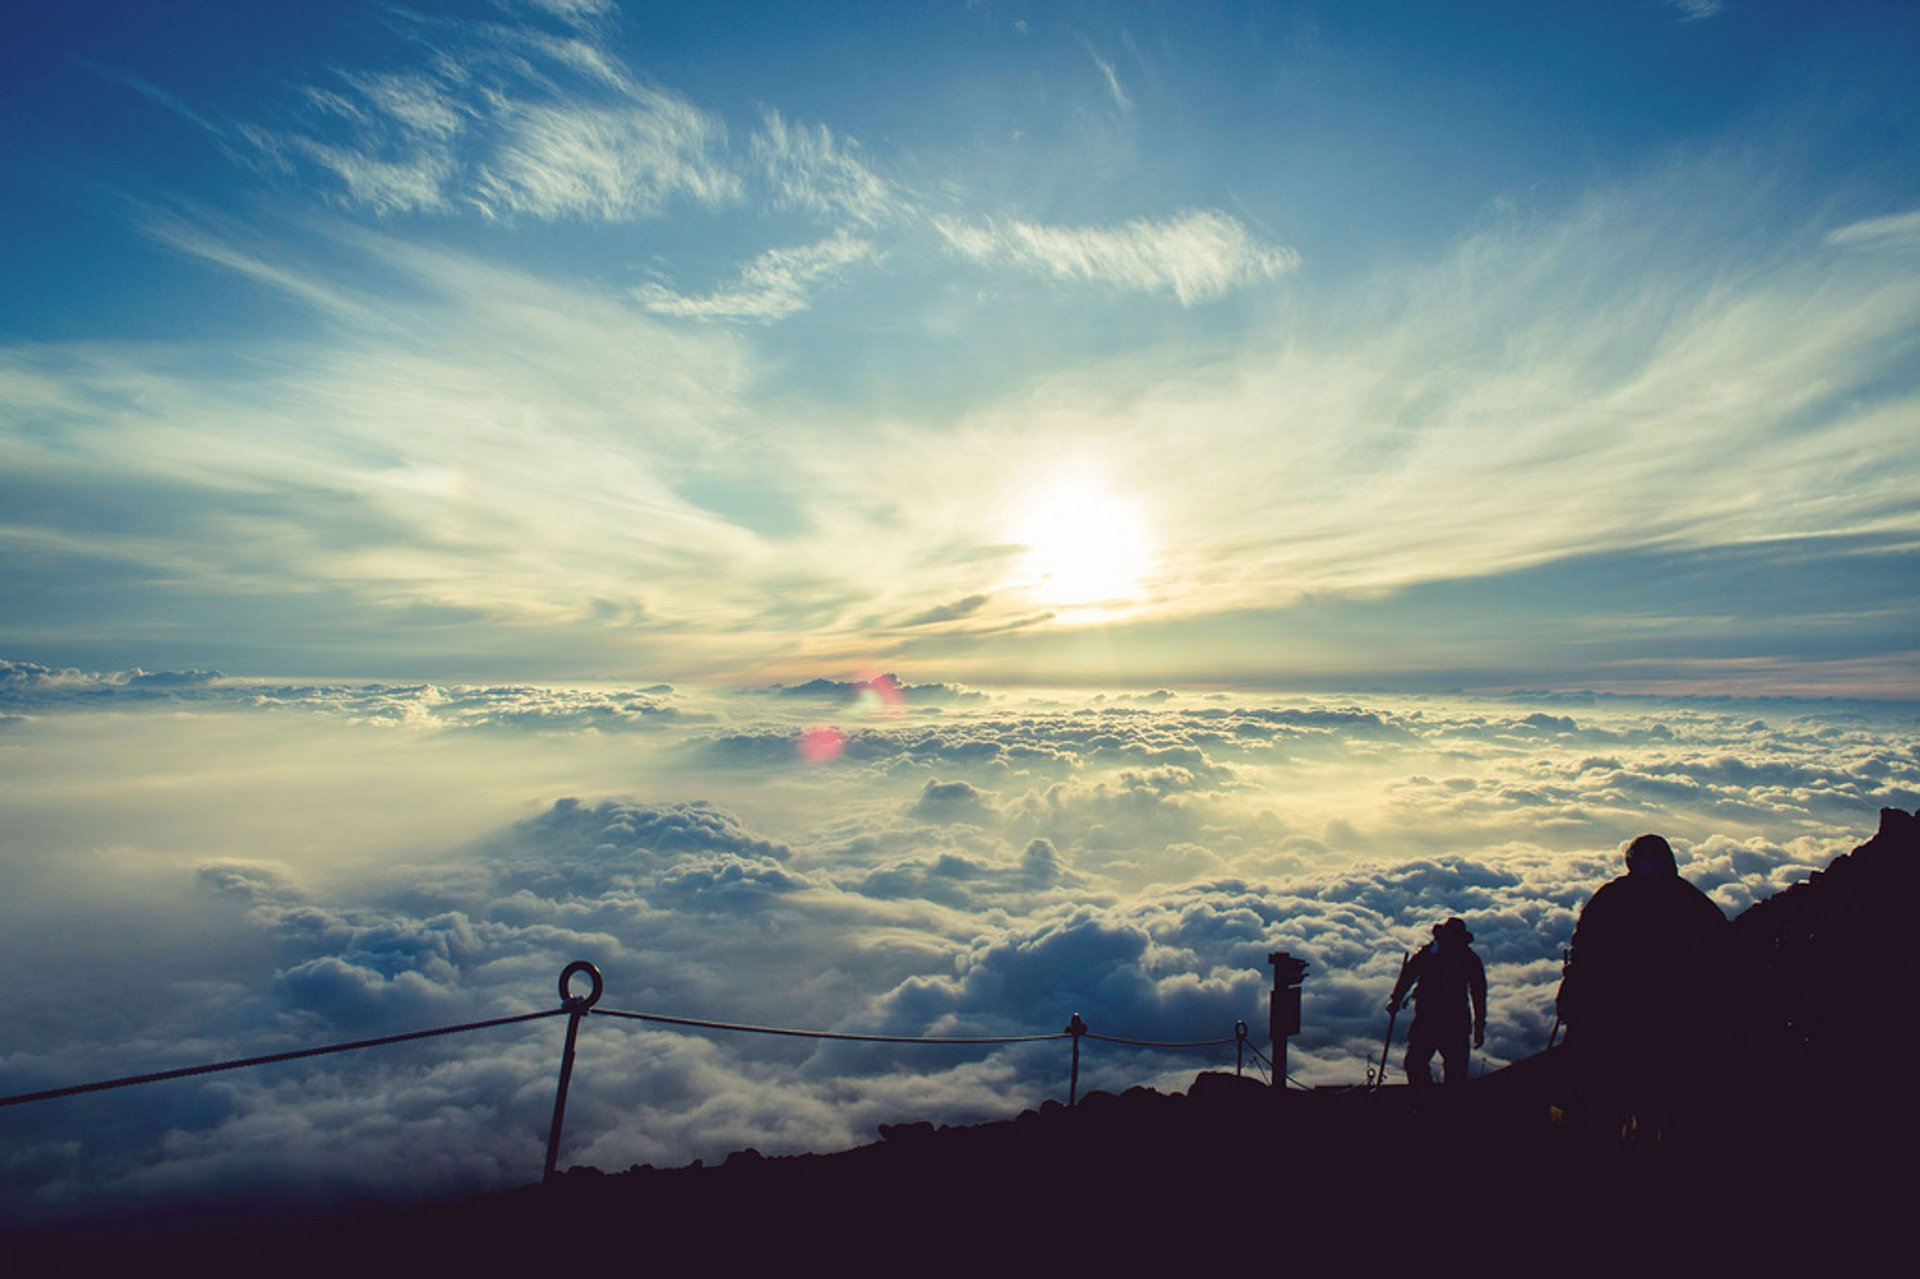 Climbing Mount Fuji in Japan - Best Season